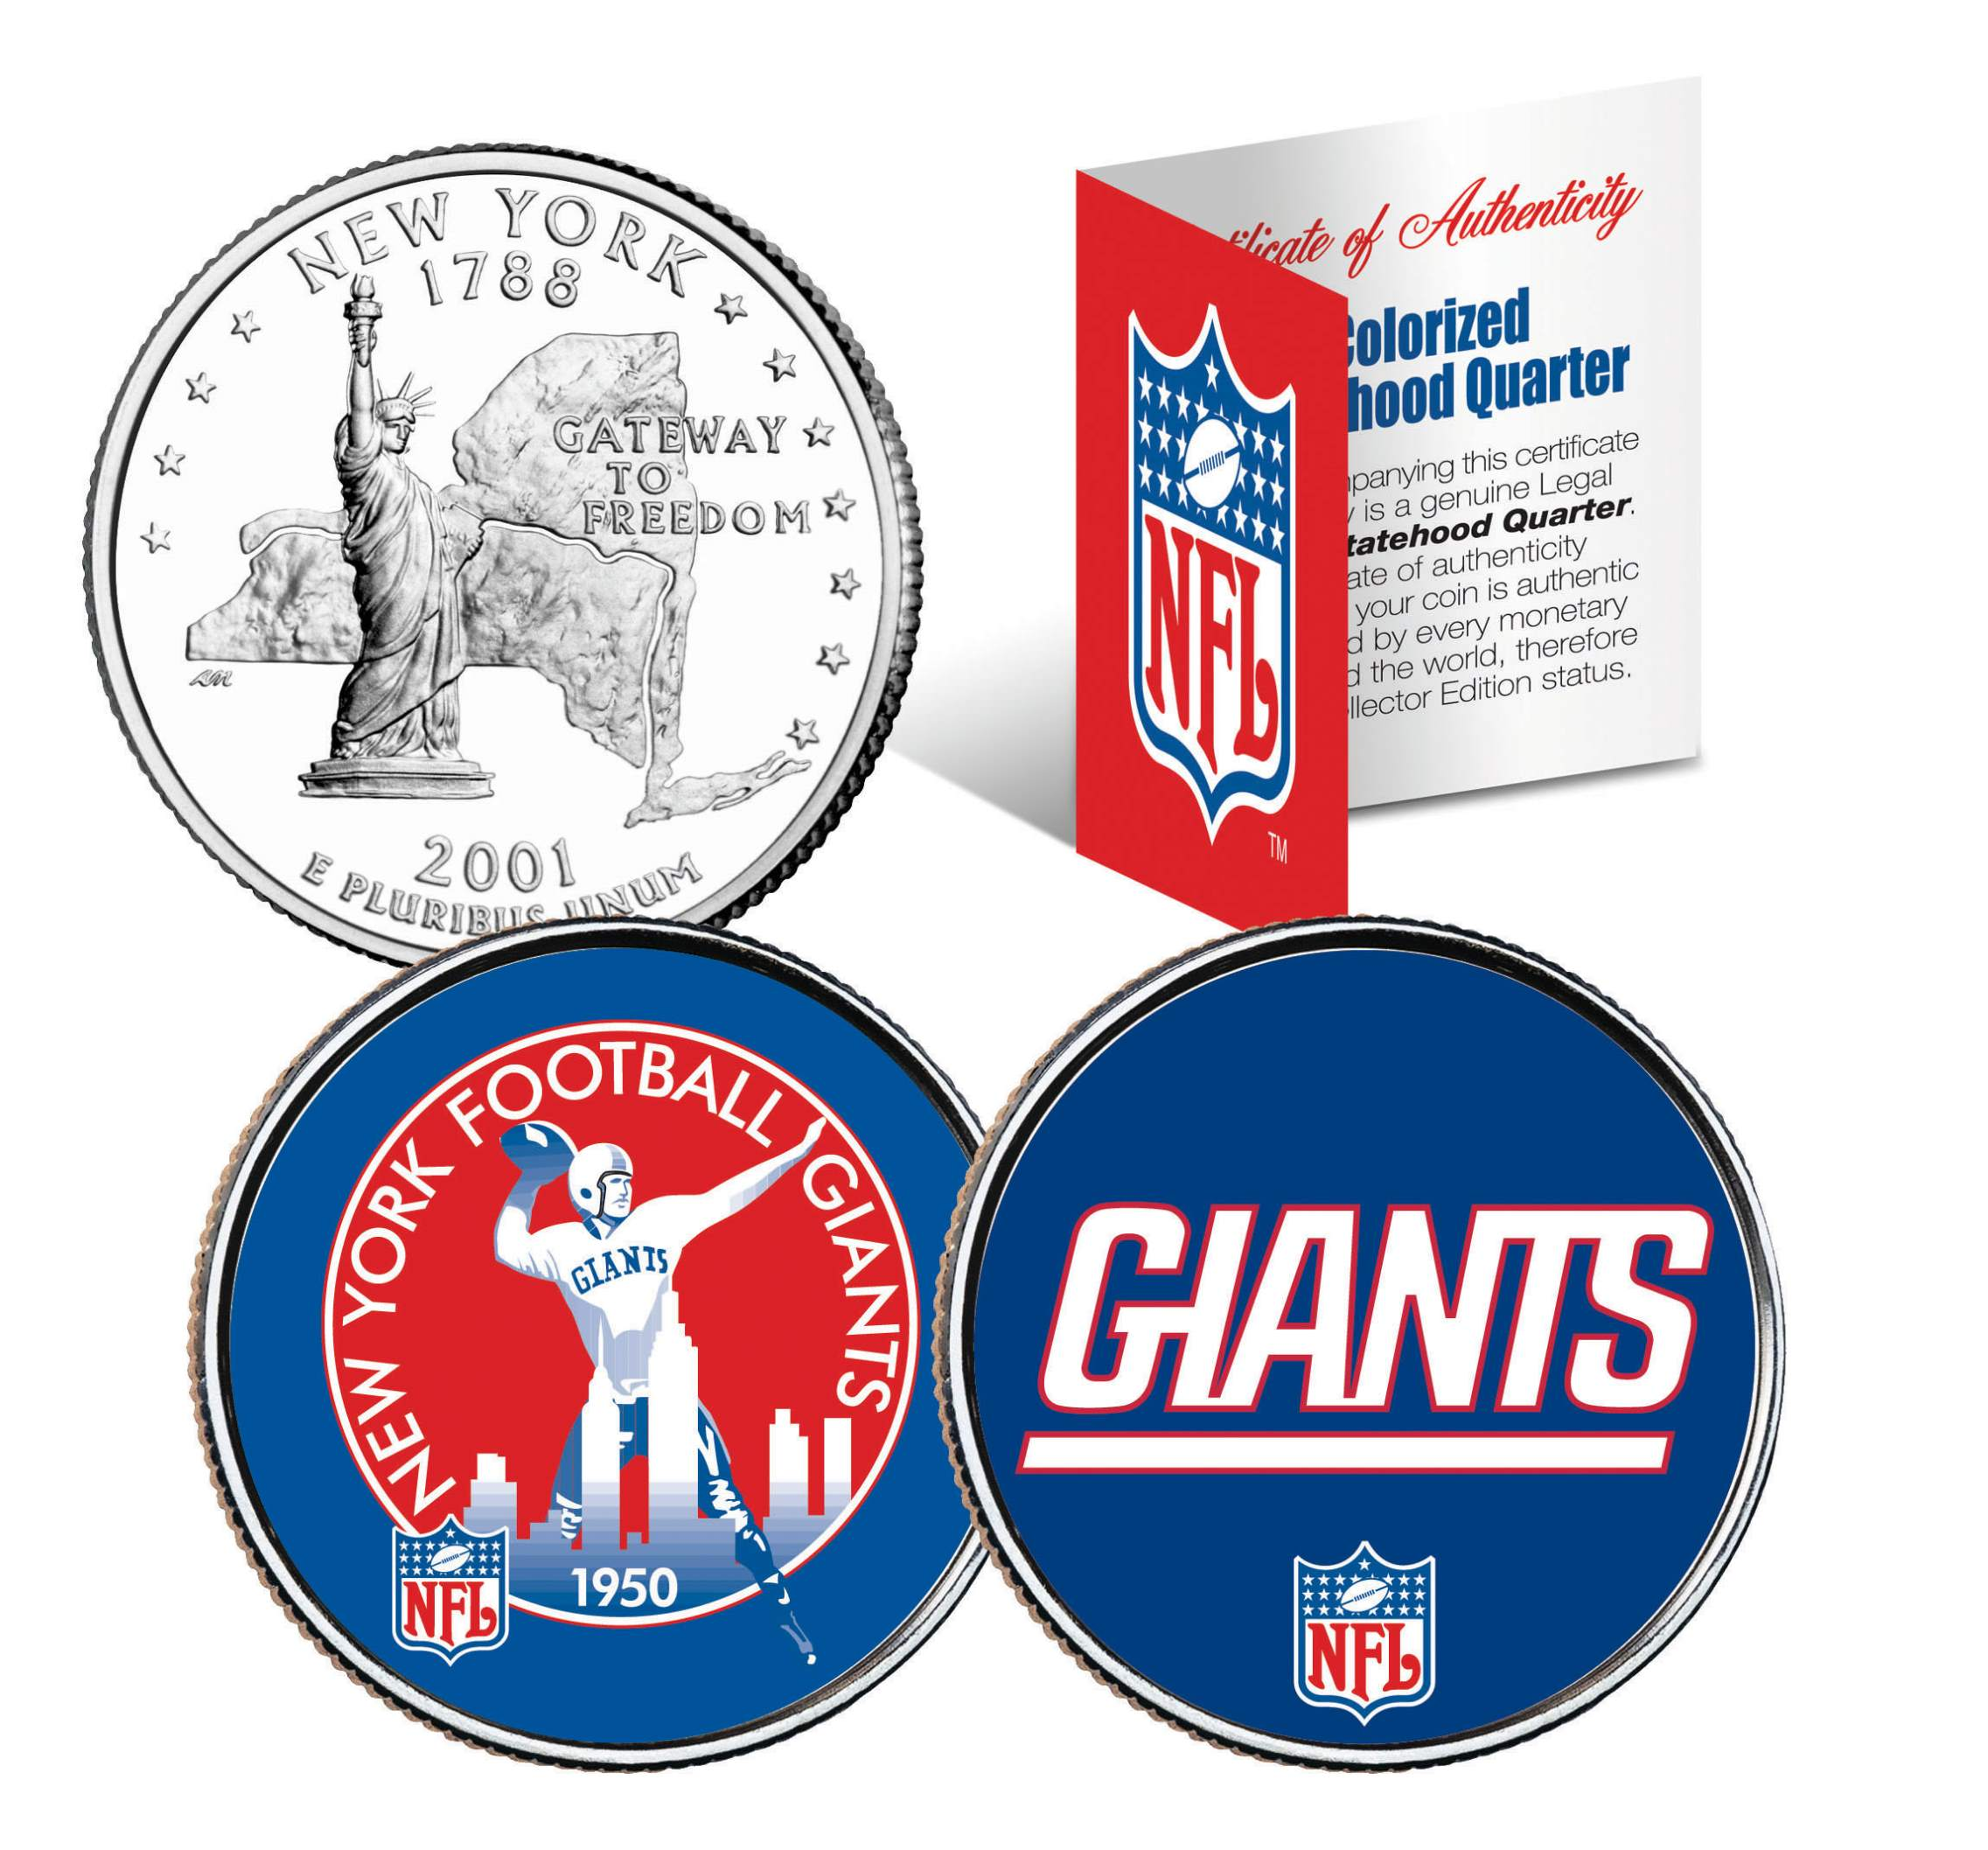 NEW YORK GIANTS * Retro & Team Logo * NY Quarters 2-Coin U.S. Set NFL LICENSED